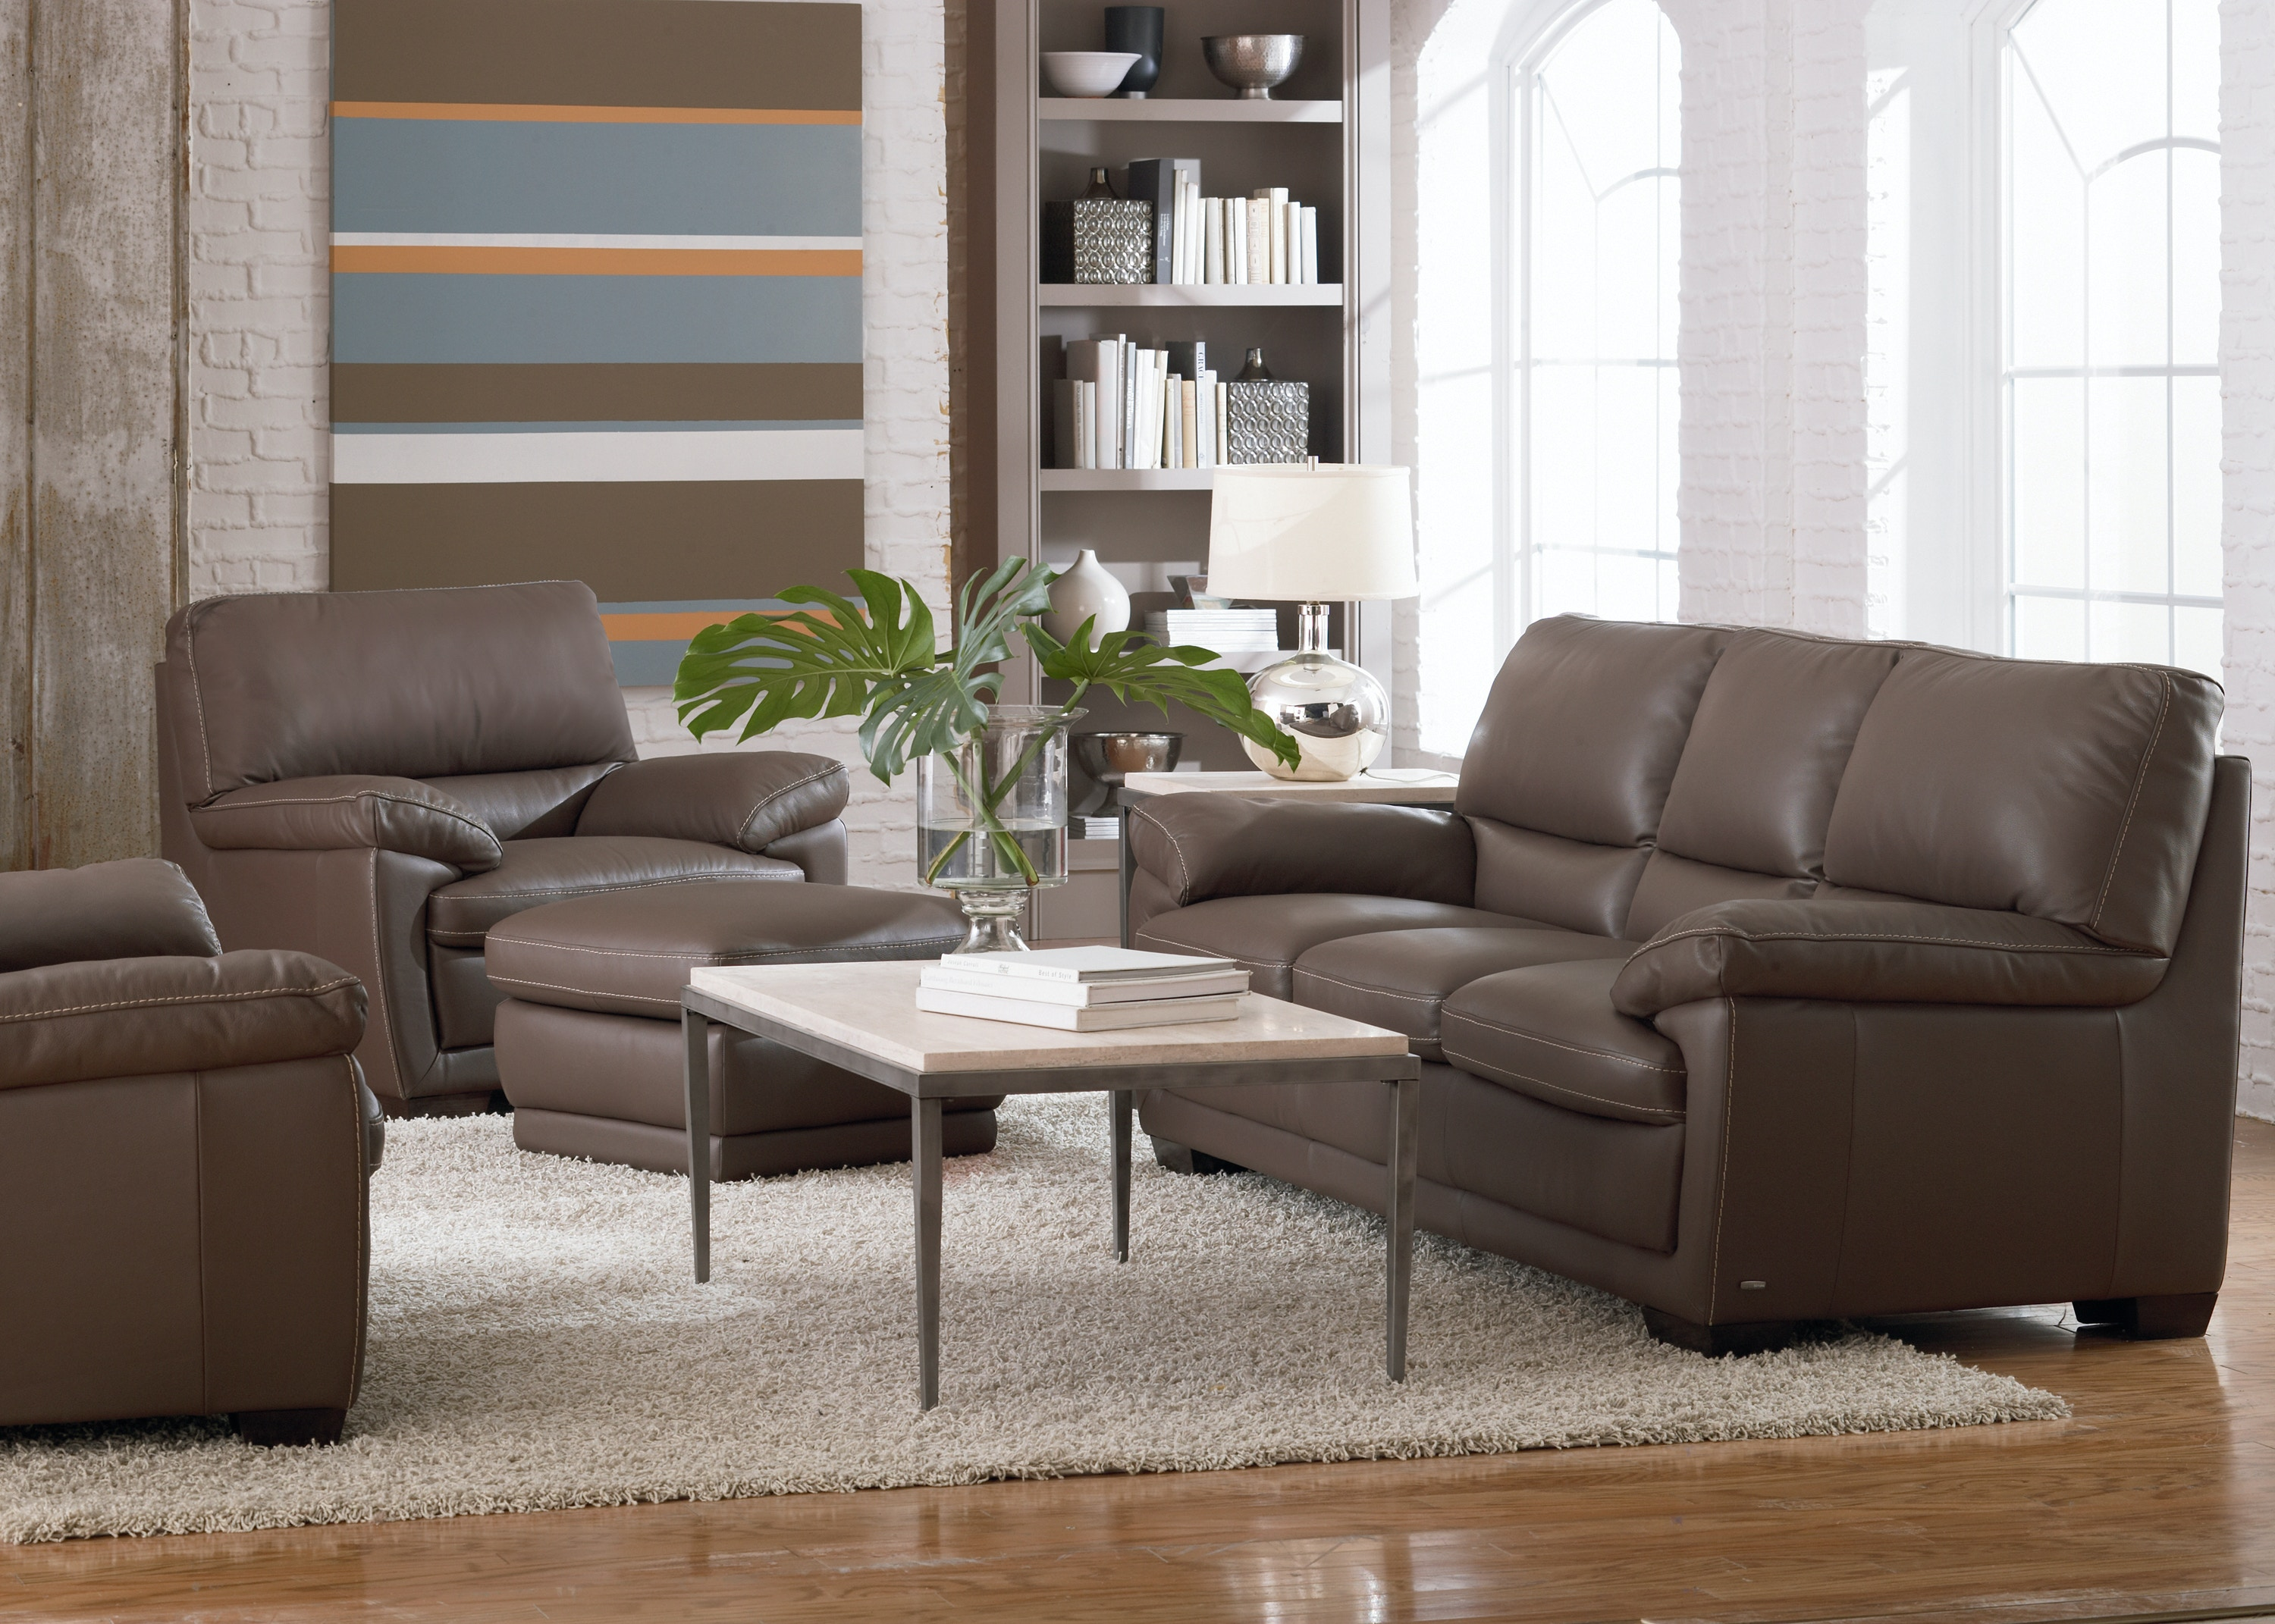 Natuzzi Furniture Natuzzi Wonderful Living Rooms Chairs And